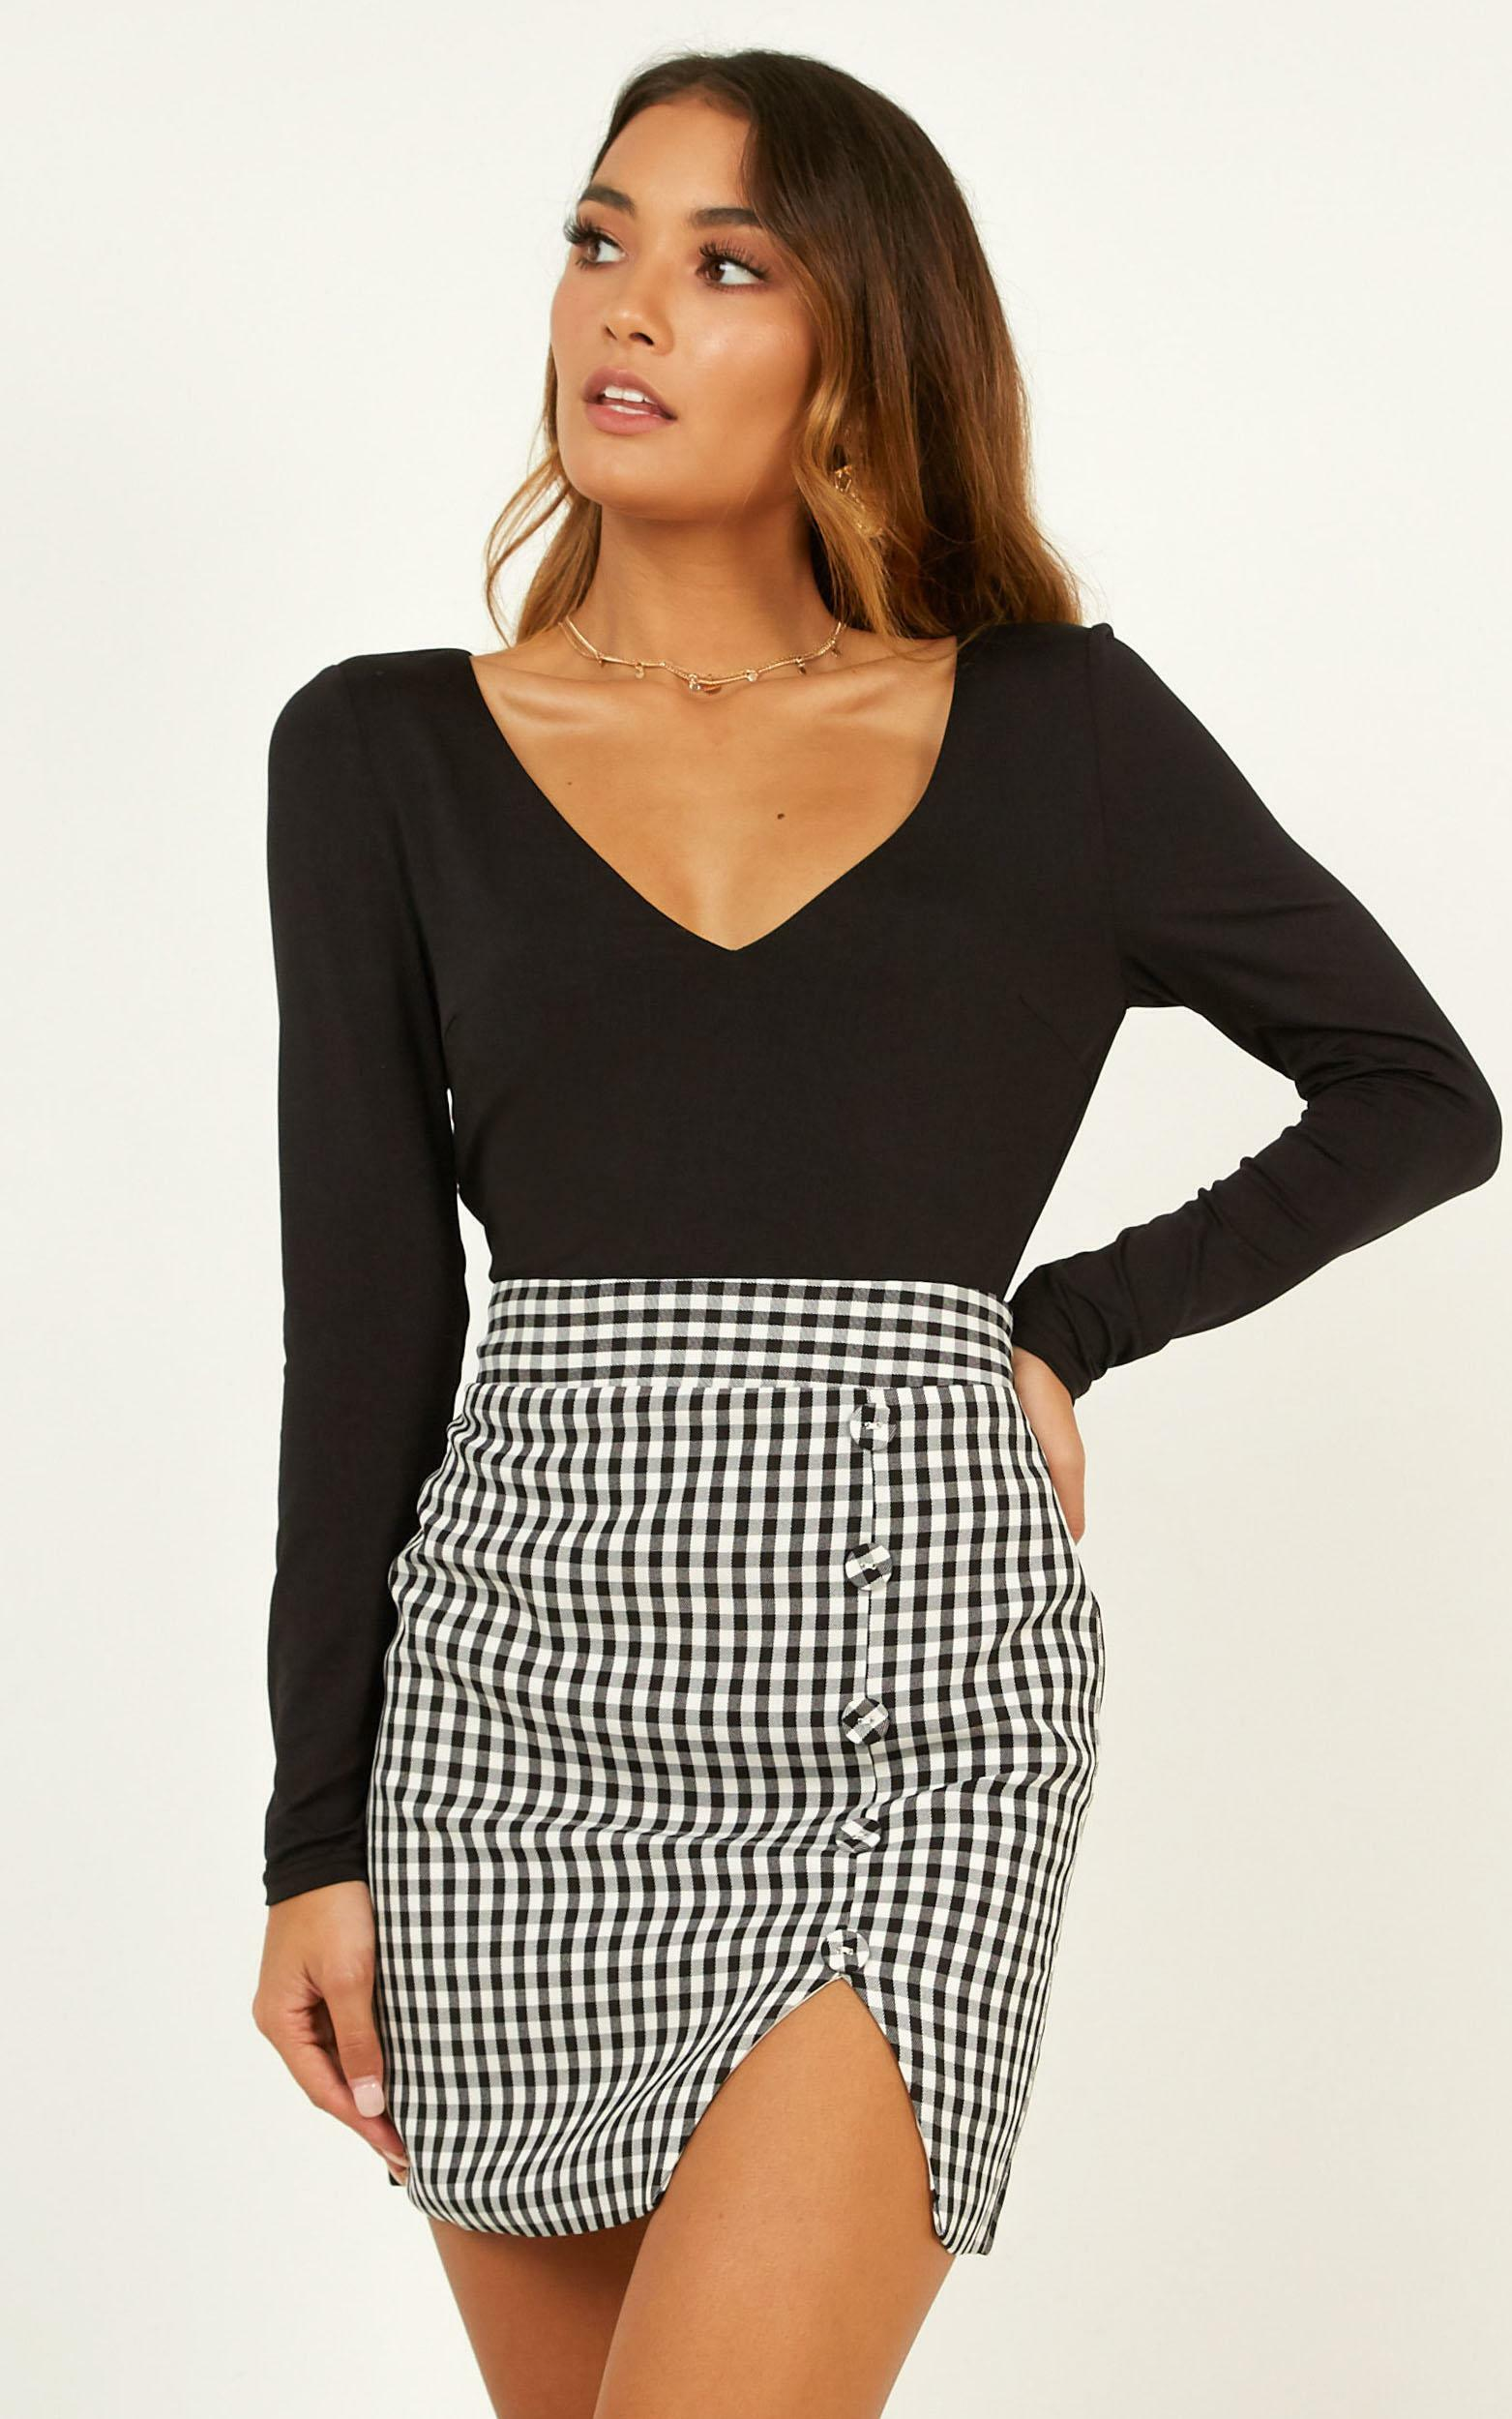 Cancelled Plans Skirt In Black Check - 16 (XXL), Black, hi-res image number null